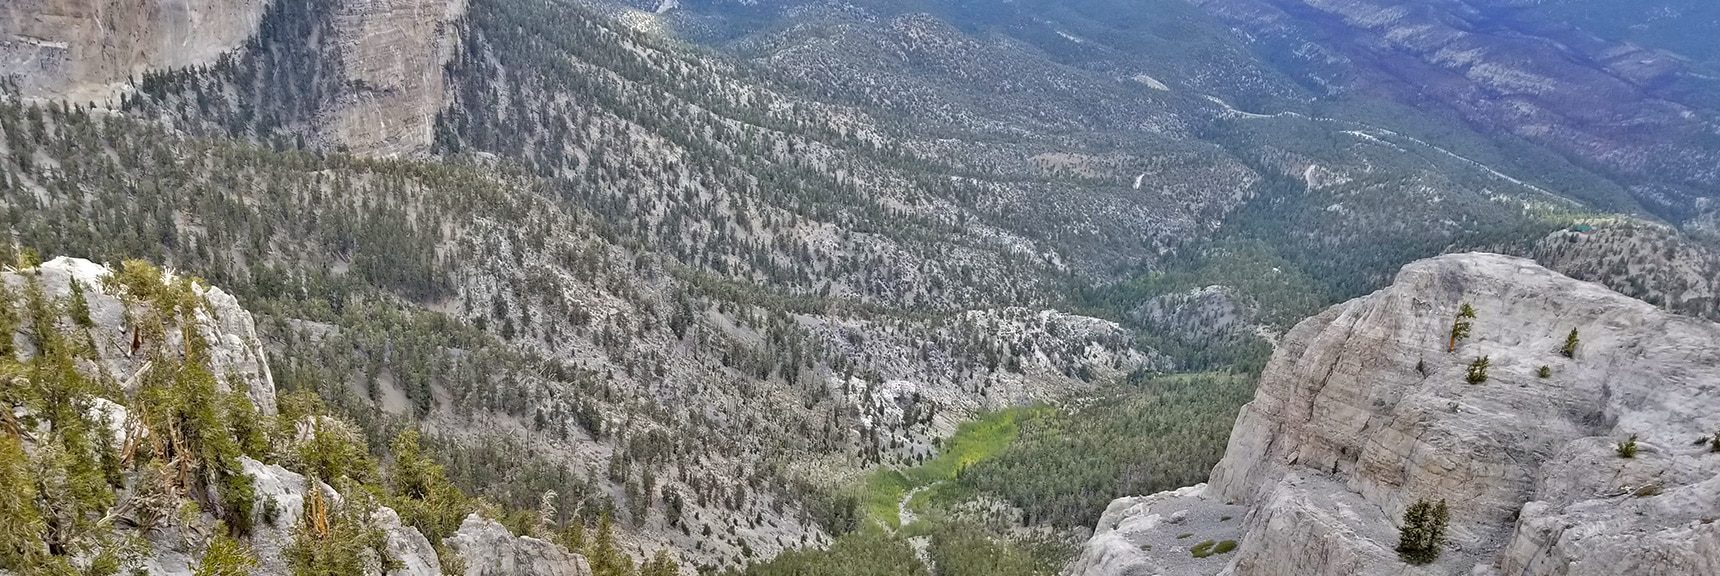 View Down the 1st Branch of the Main Northern Wash Into Lee Canyon   Mummy Mountain Northern Rim Overlook, Spring Mountain Wilderness, Nevada